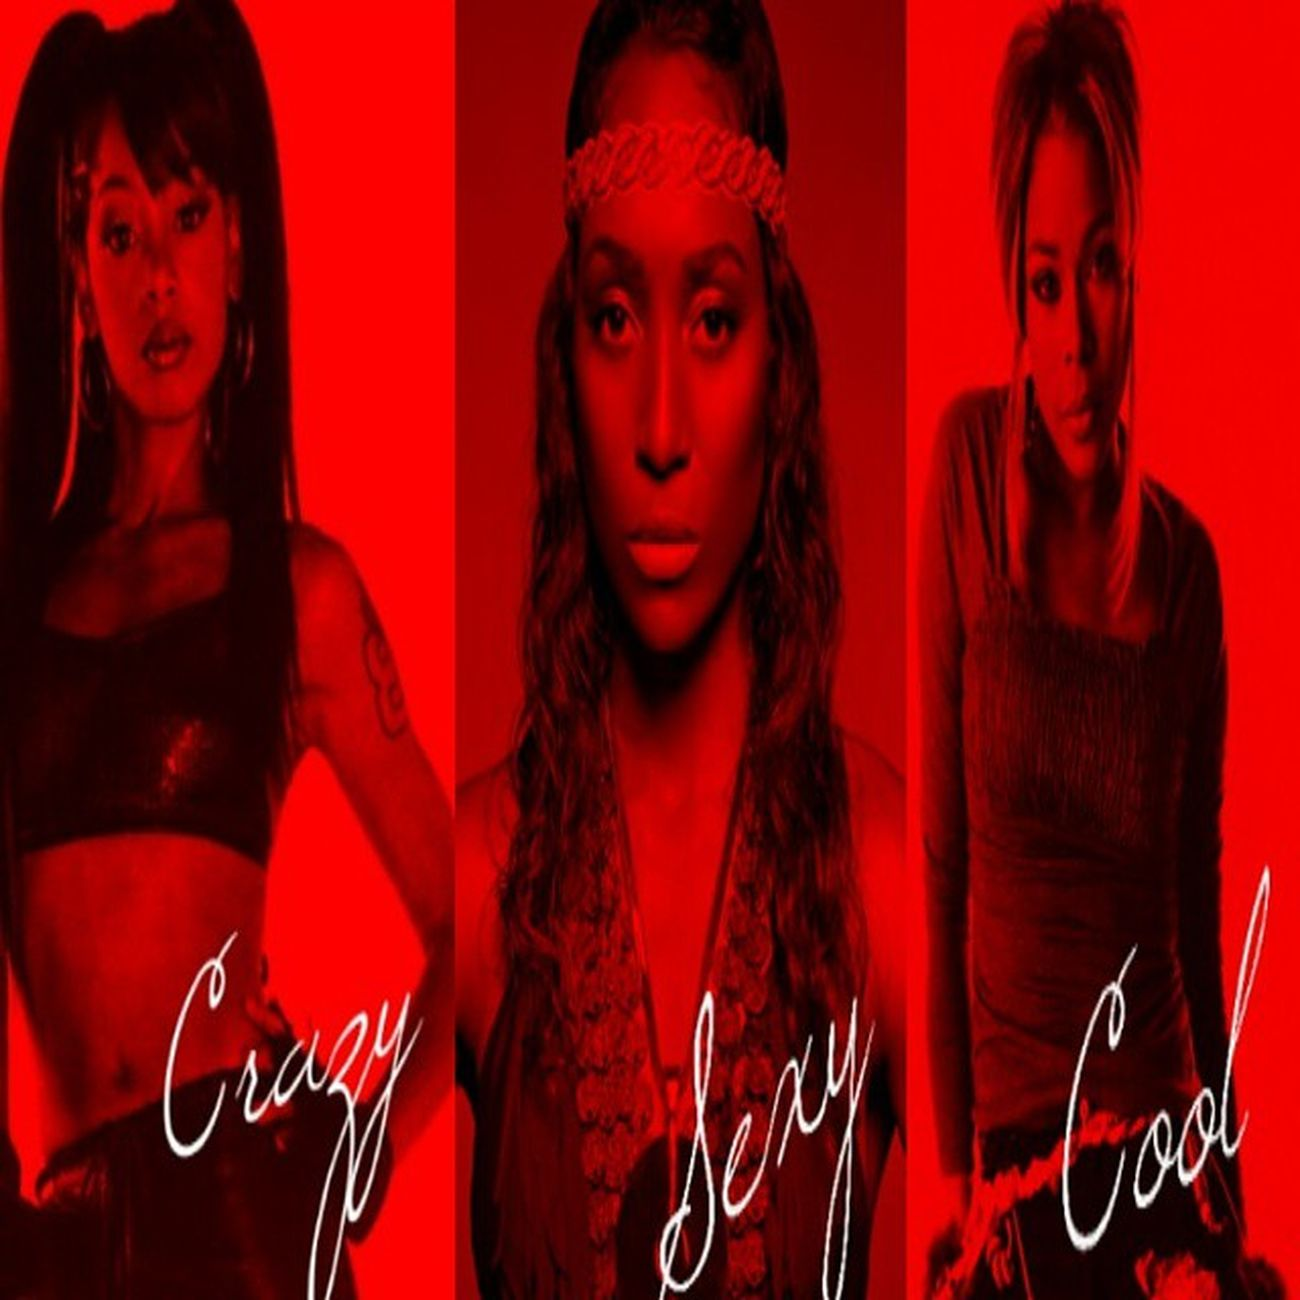 CrazySexyCool TLC Lefteye Tboz Chilli ??????? this edit